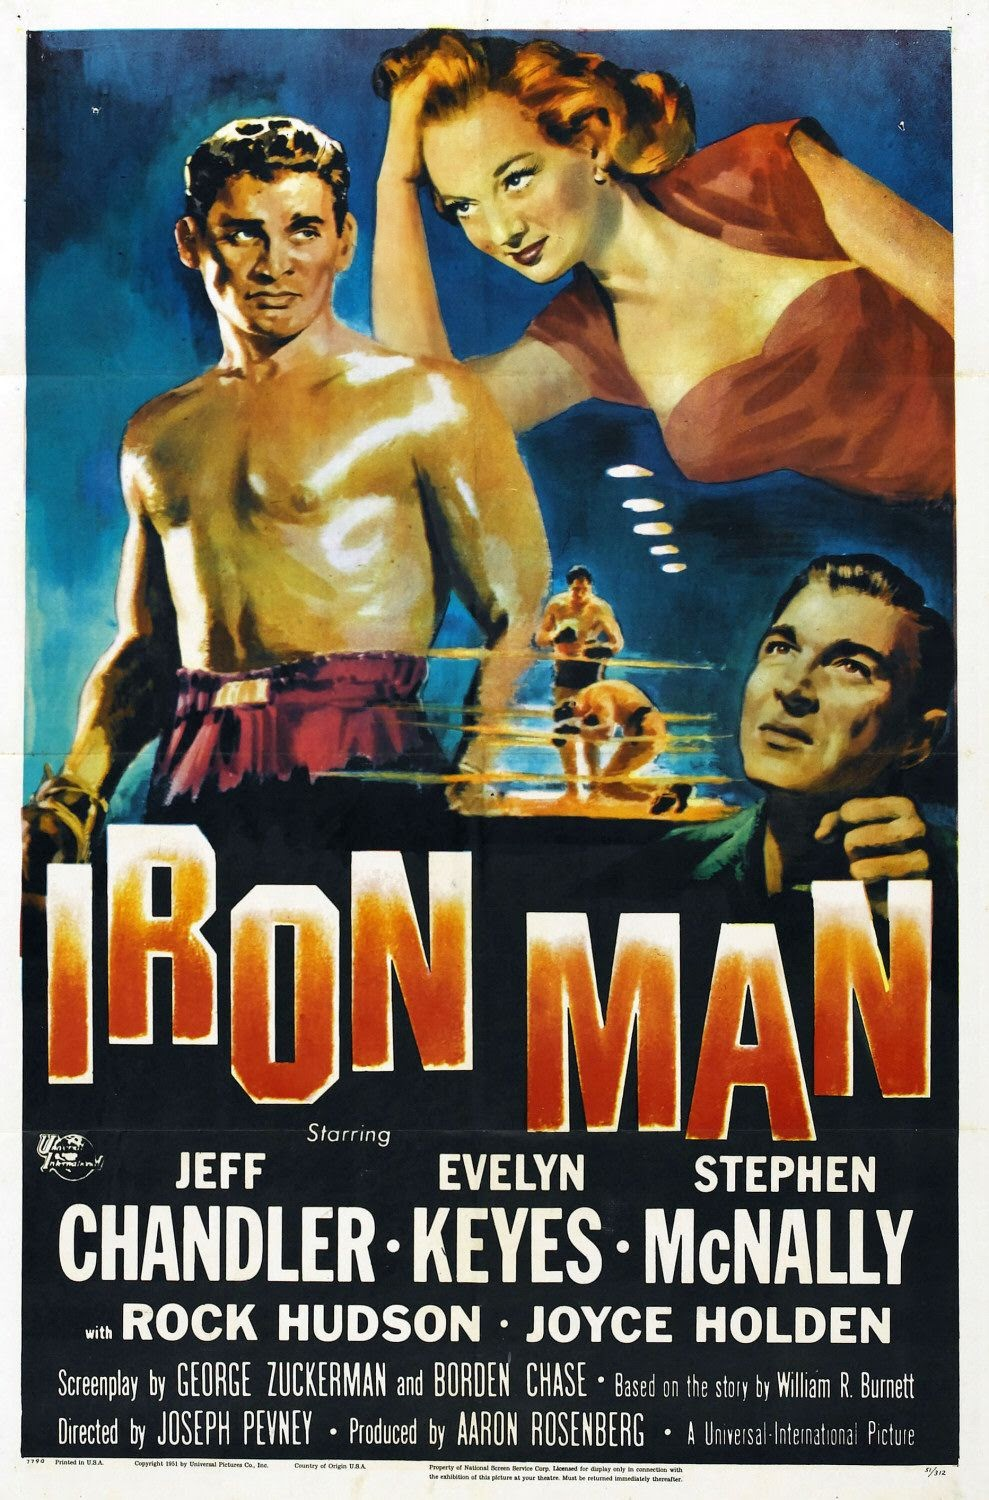 Movie Posters - 1950s - Galerie filmposter.net